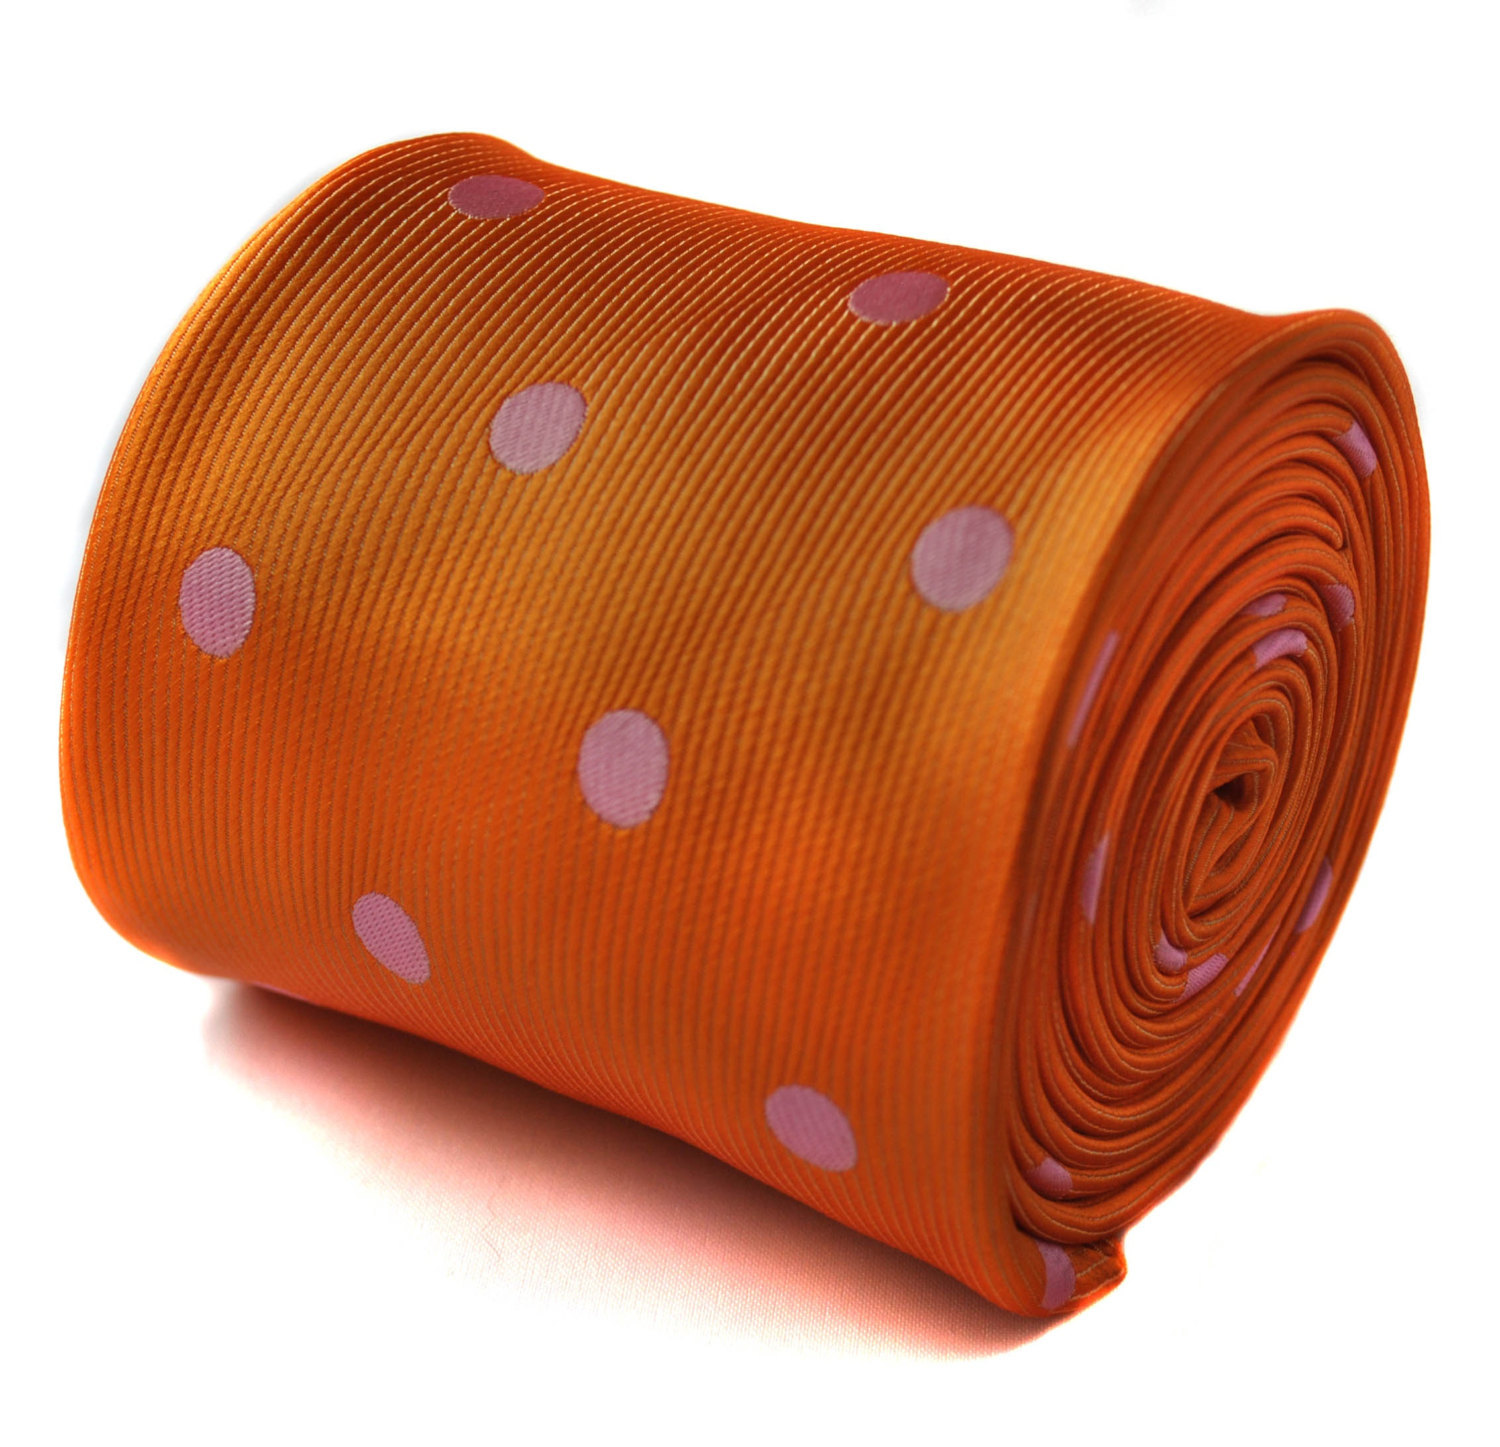 orange and pink polka spot tie with signature floral design to the rear by Frede